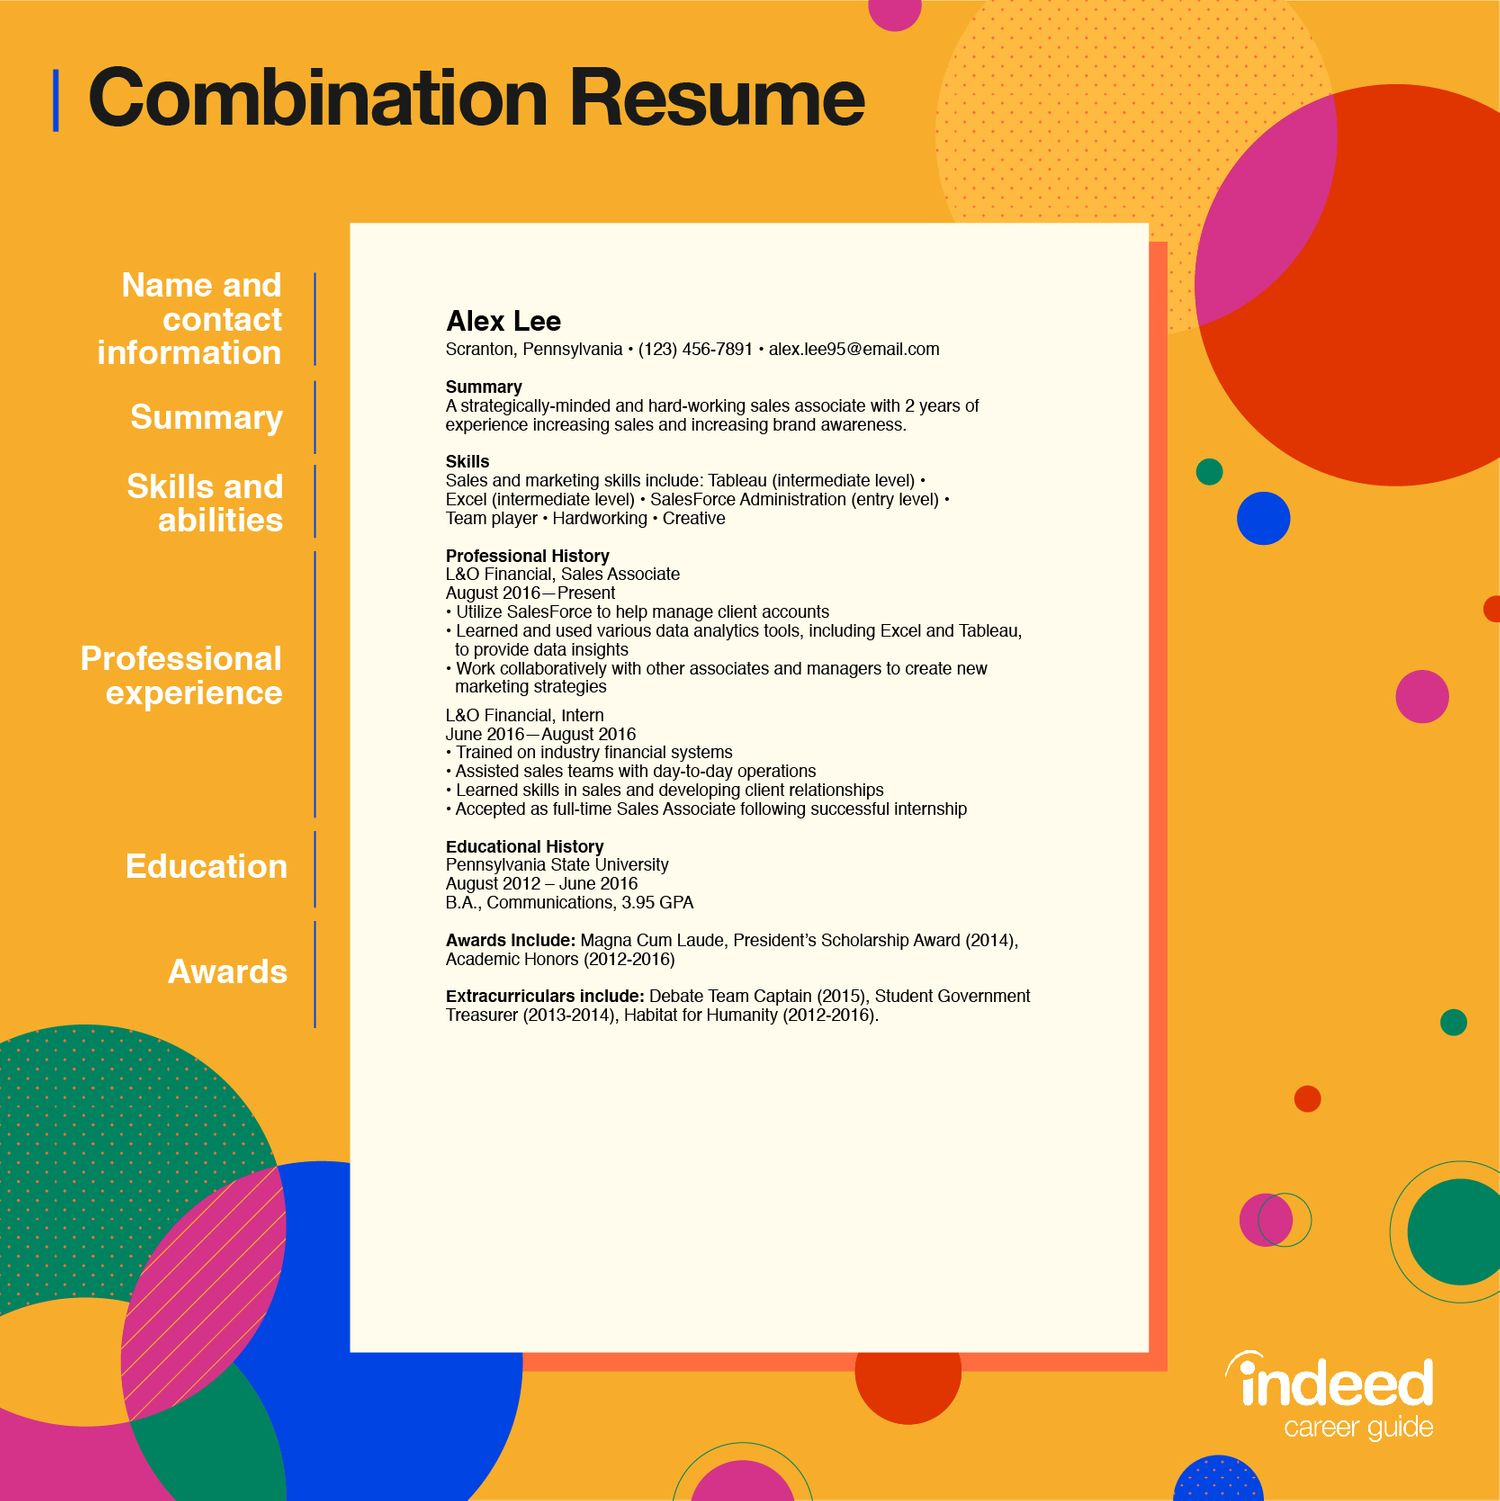 combination resume tips and examples indeed template resized best font for design Resume Combination Resume Template 2020